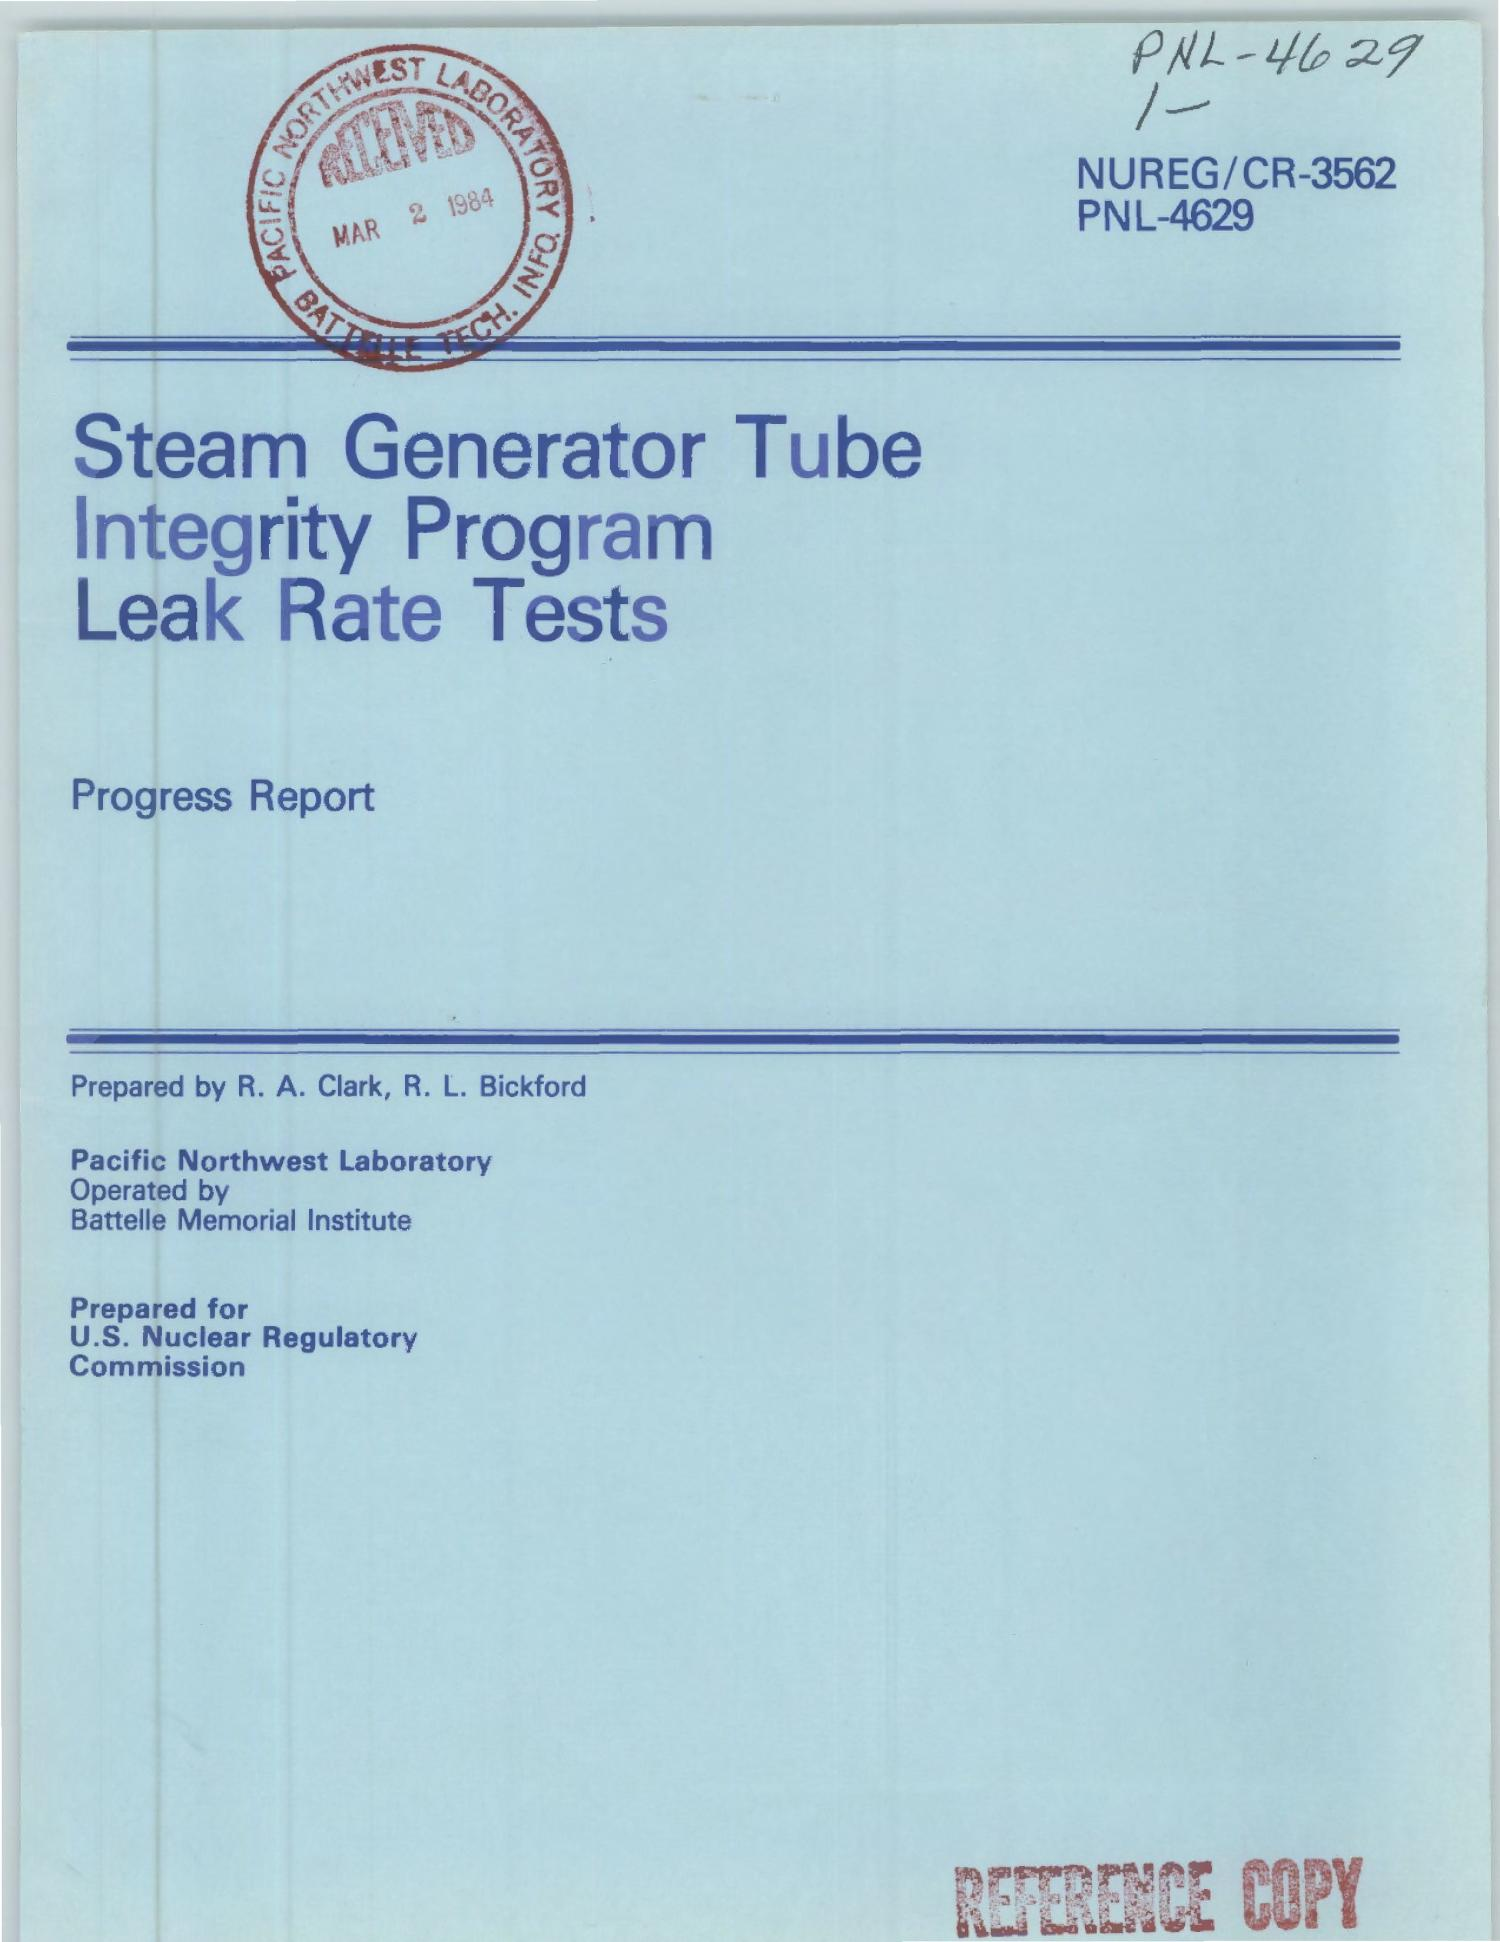 Steam generator tube integrity program leak rate tests. Progress report                                                                                                      [Sequence #]: 1 of 72